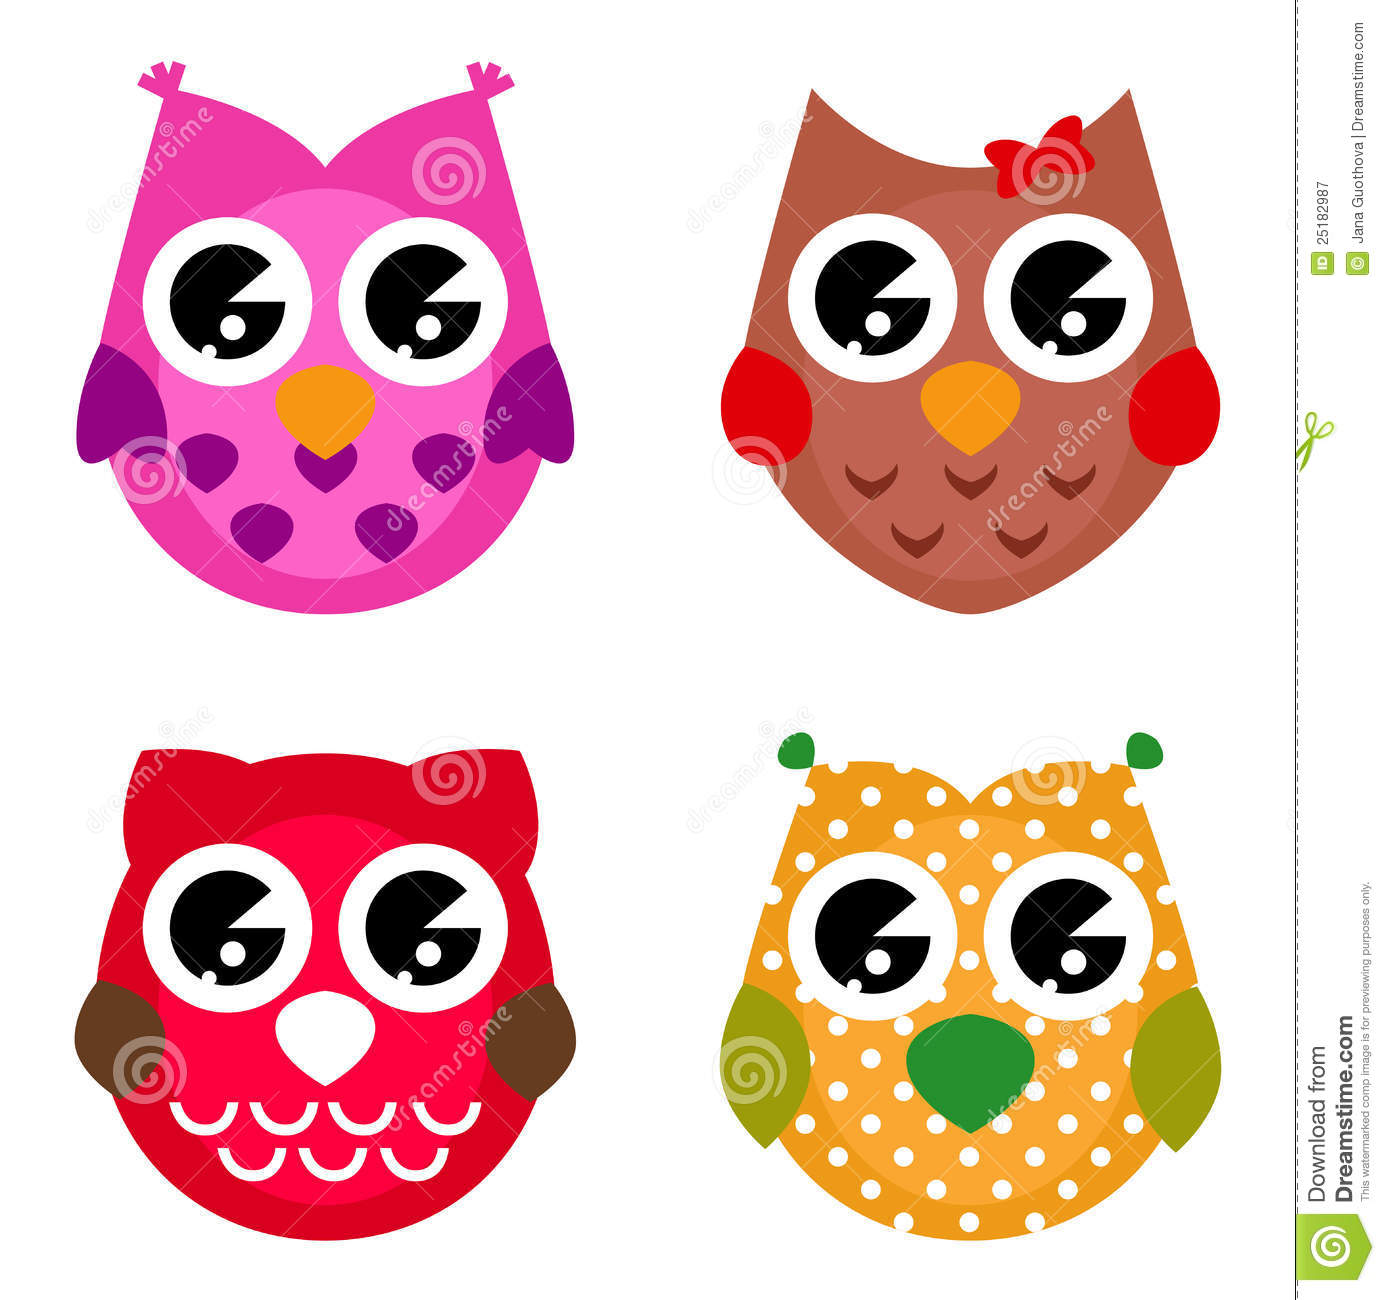 colorful cute owl vector - photo #29